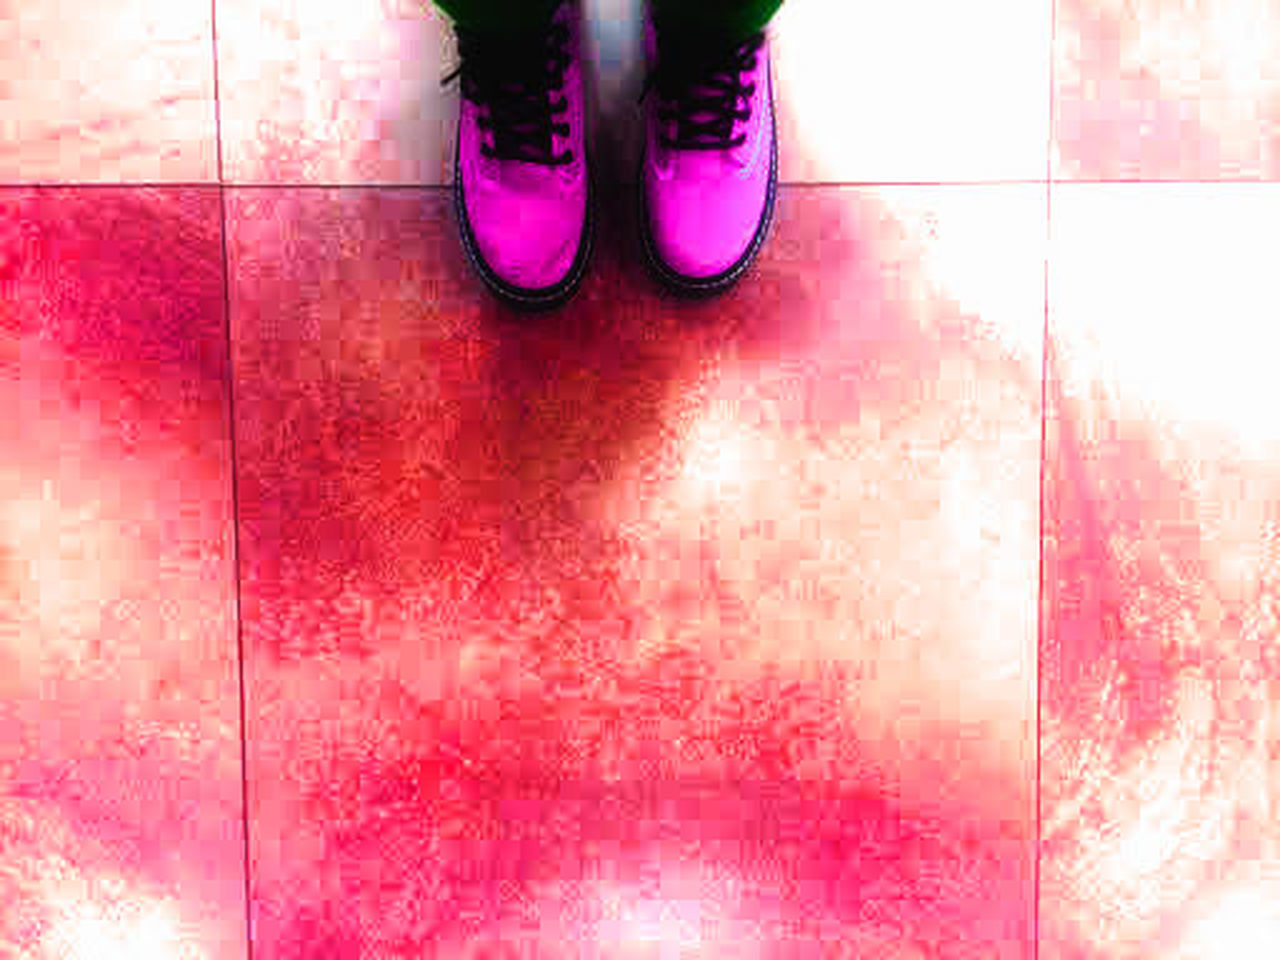 Pink Suede Shoes Close-up Day Human Body Part Human Foot Human Leg Ihaveathingwithfloors Indoors  Low Section Only Men People Shoe